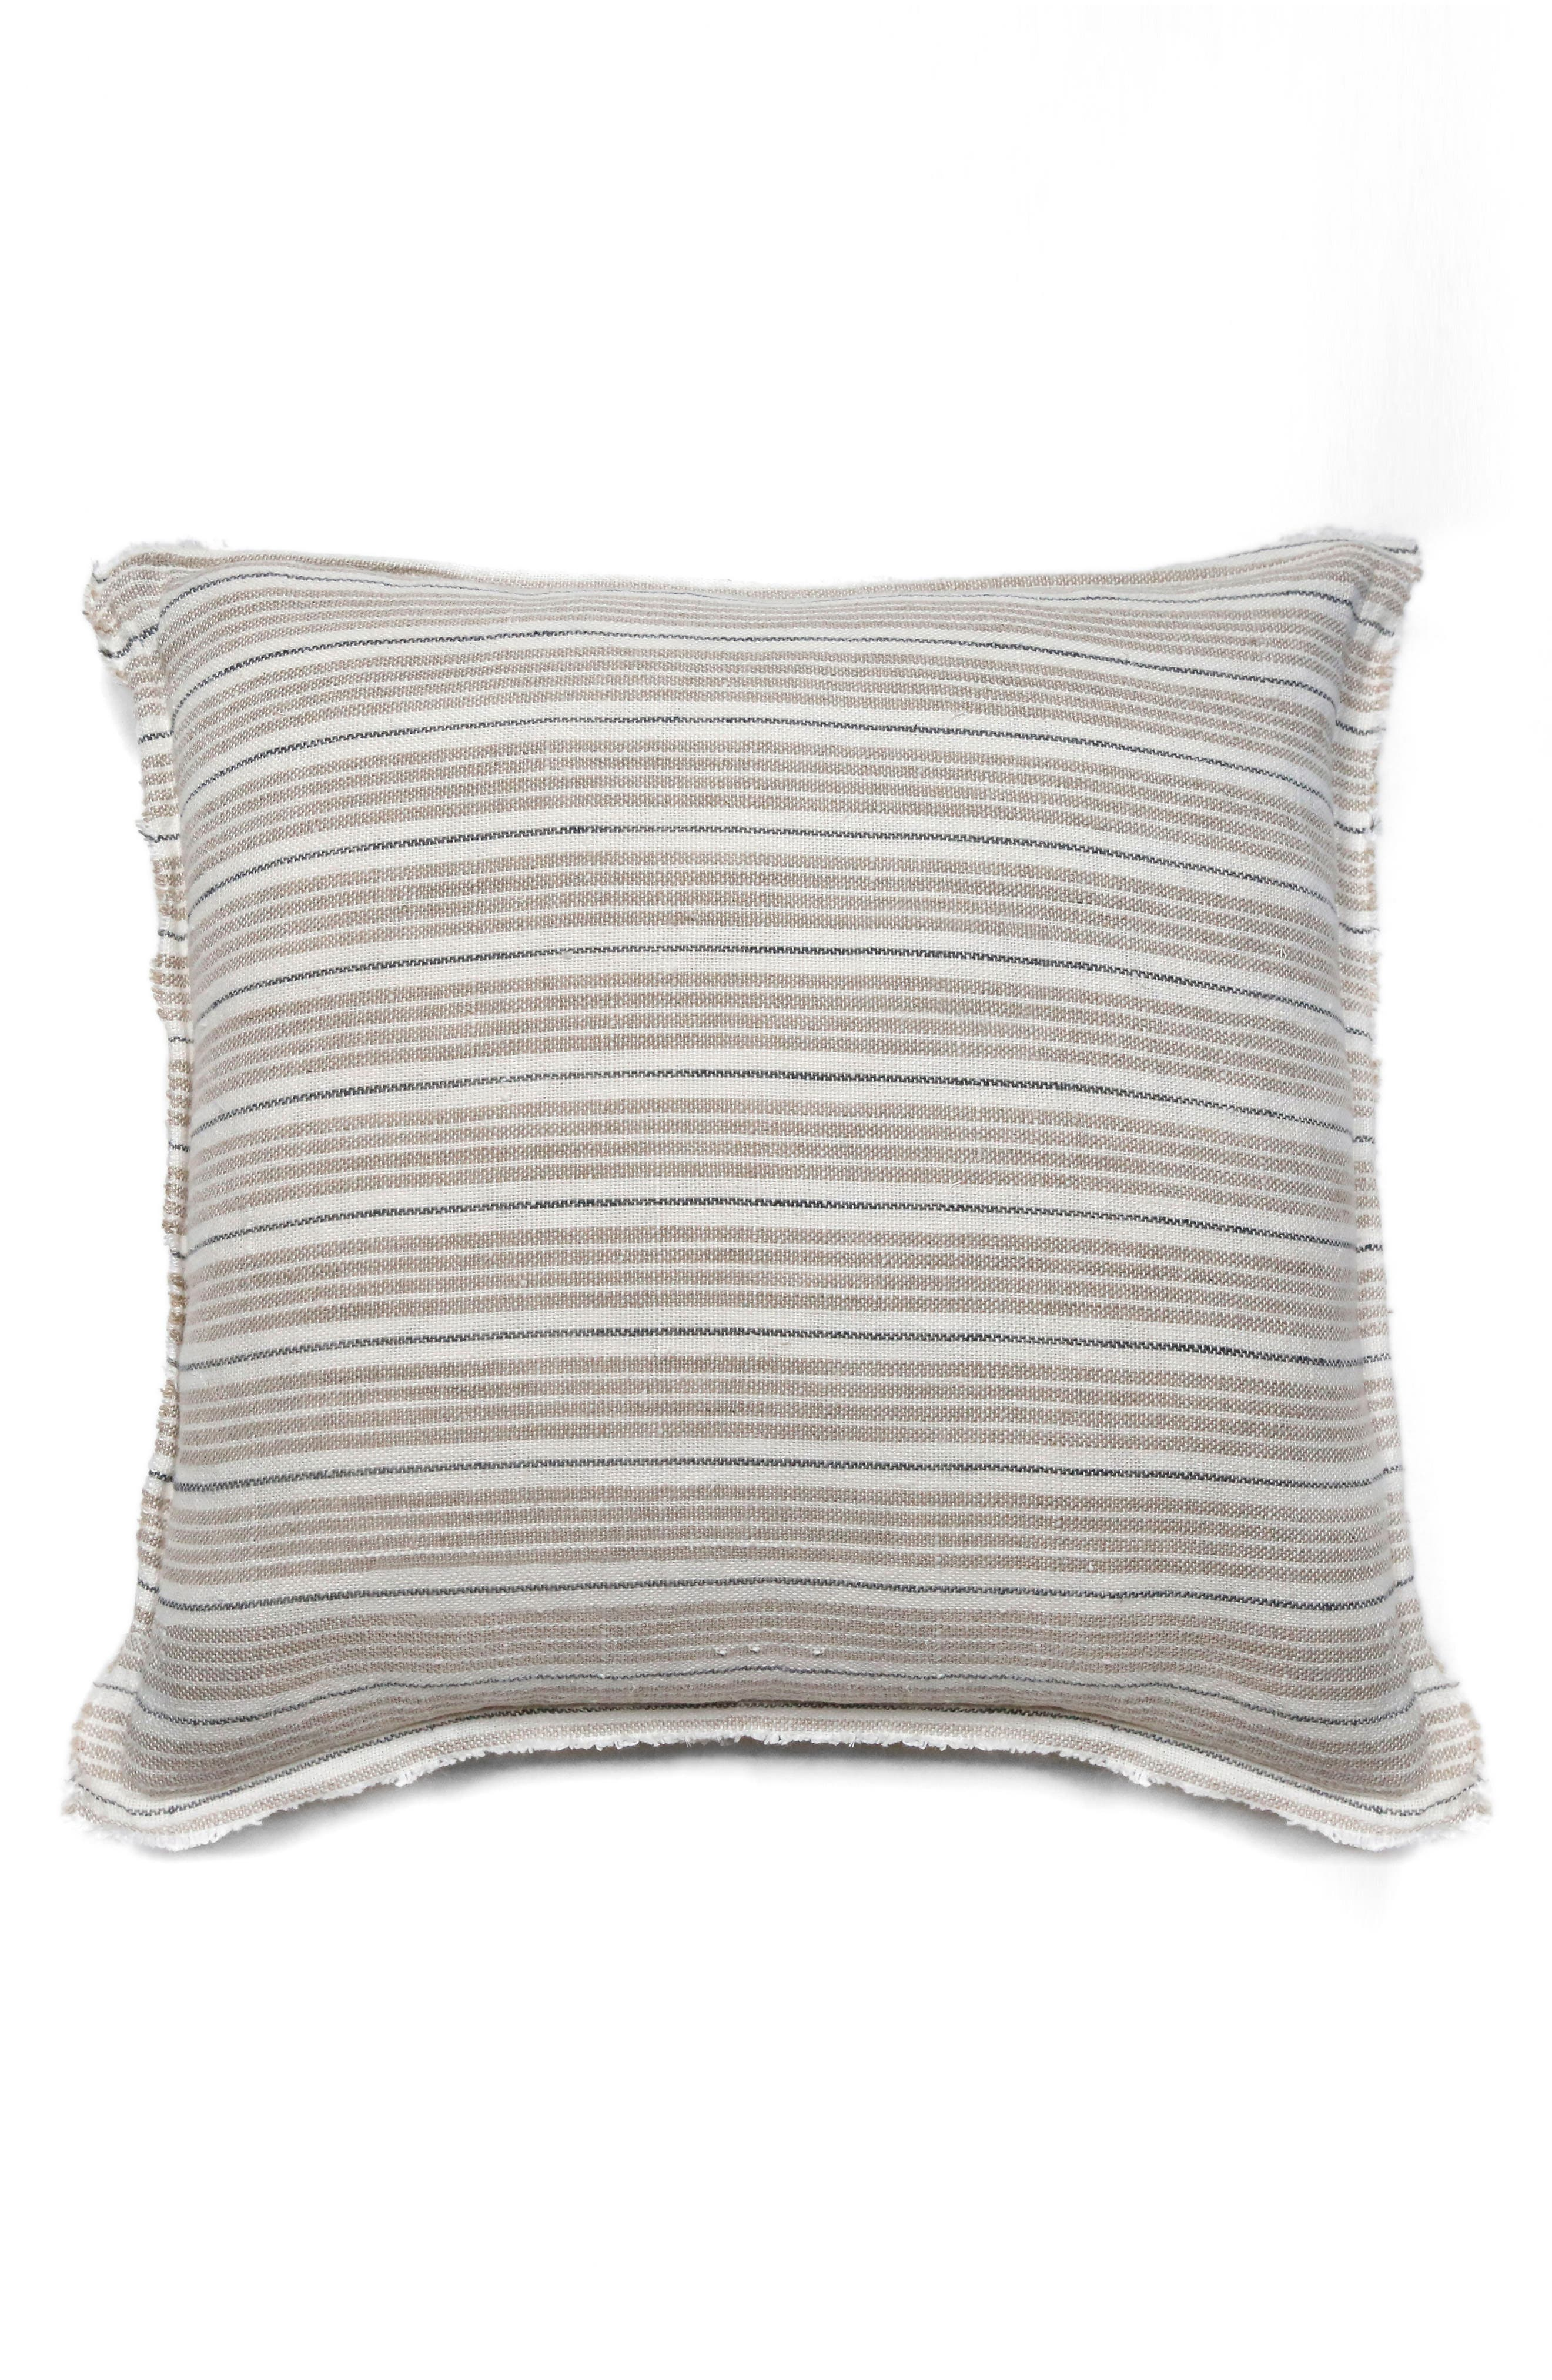 Pom Pom at Home Newport Accent Pillow